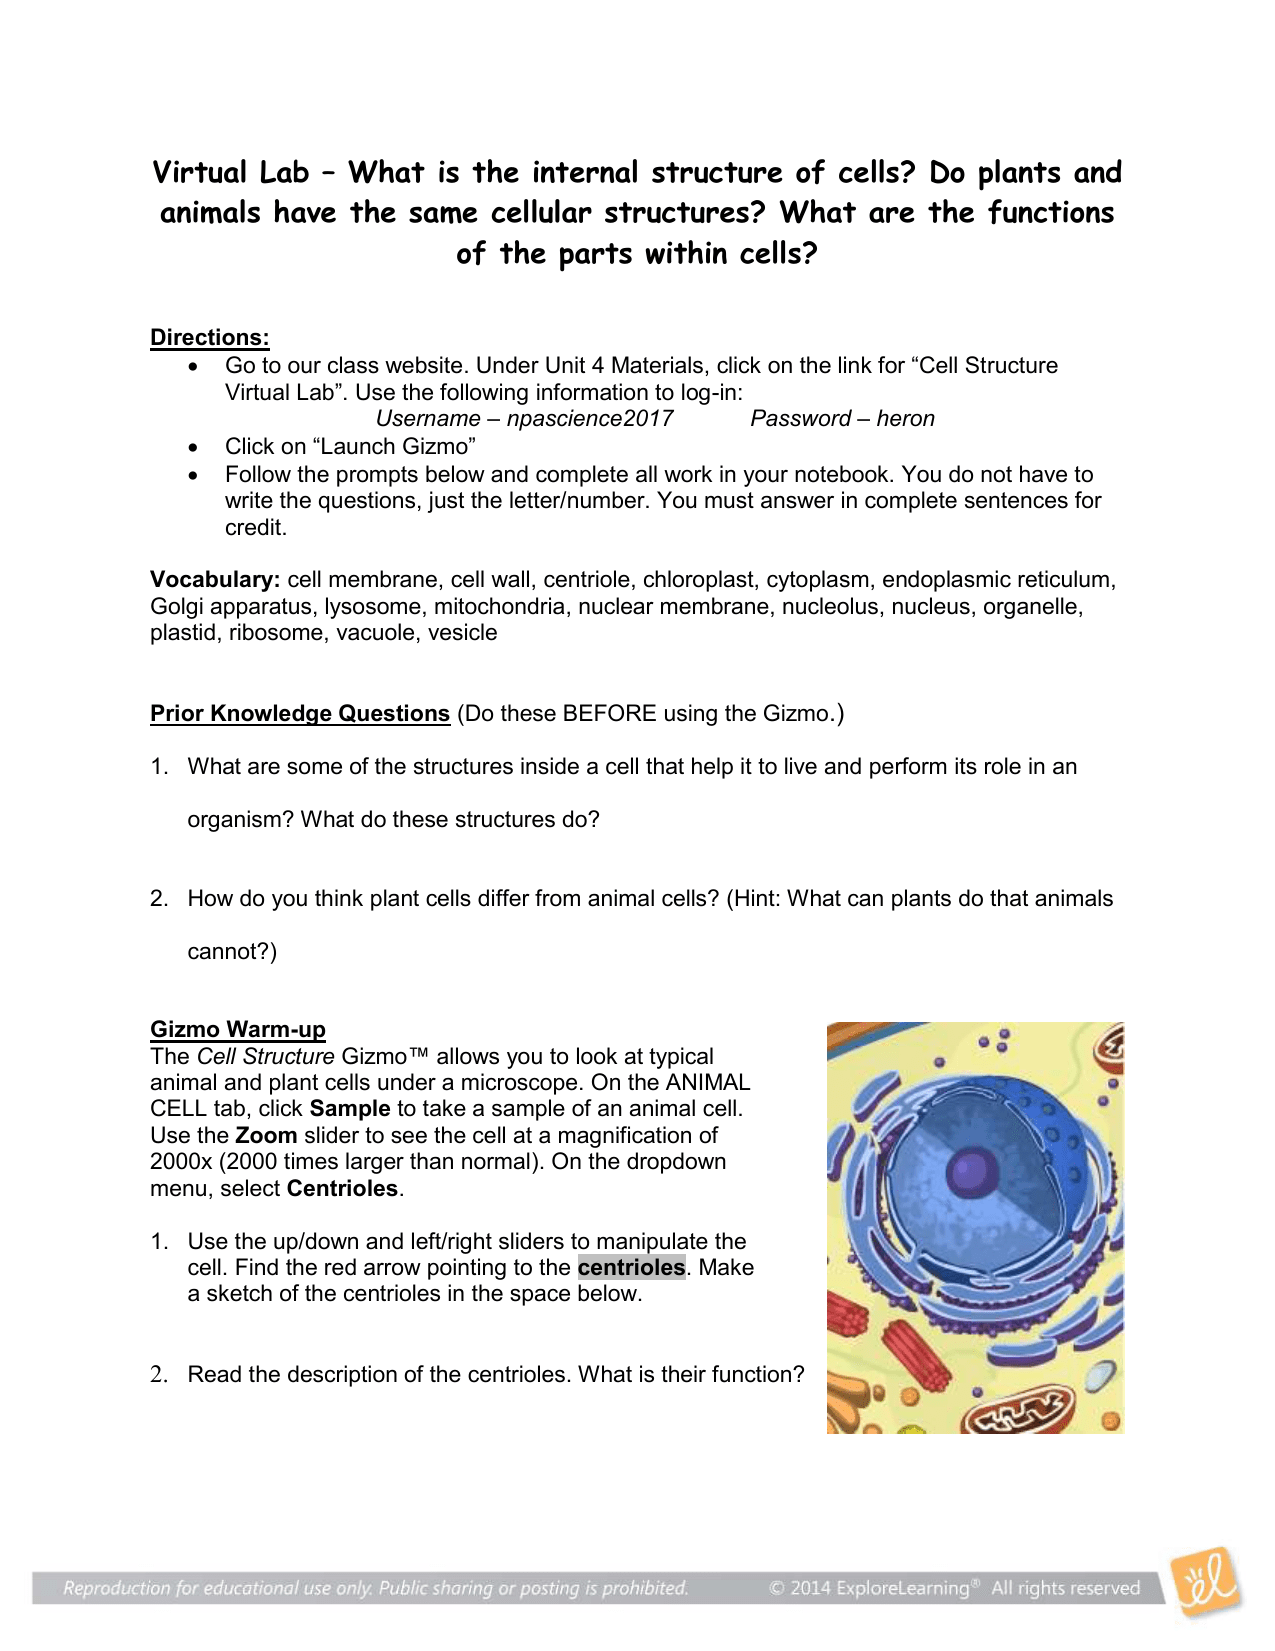 Plant And Animal Cells Microscope Lab Answers